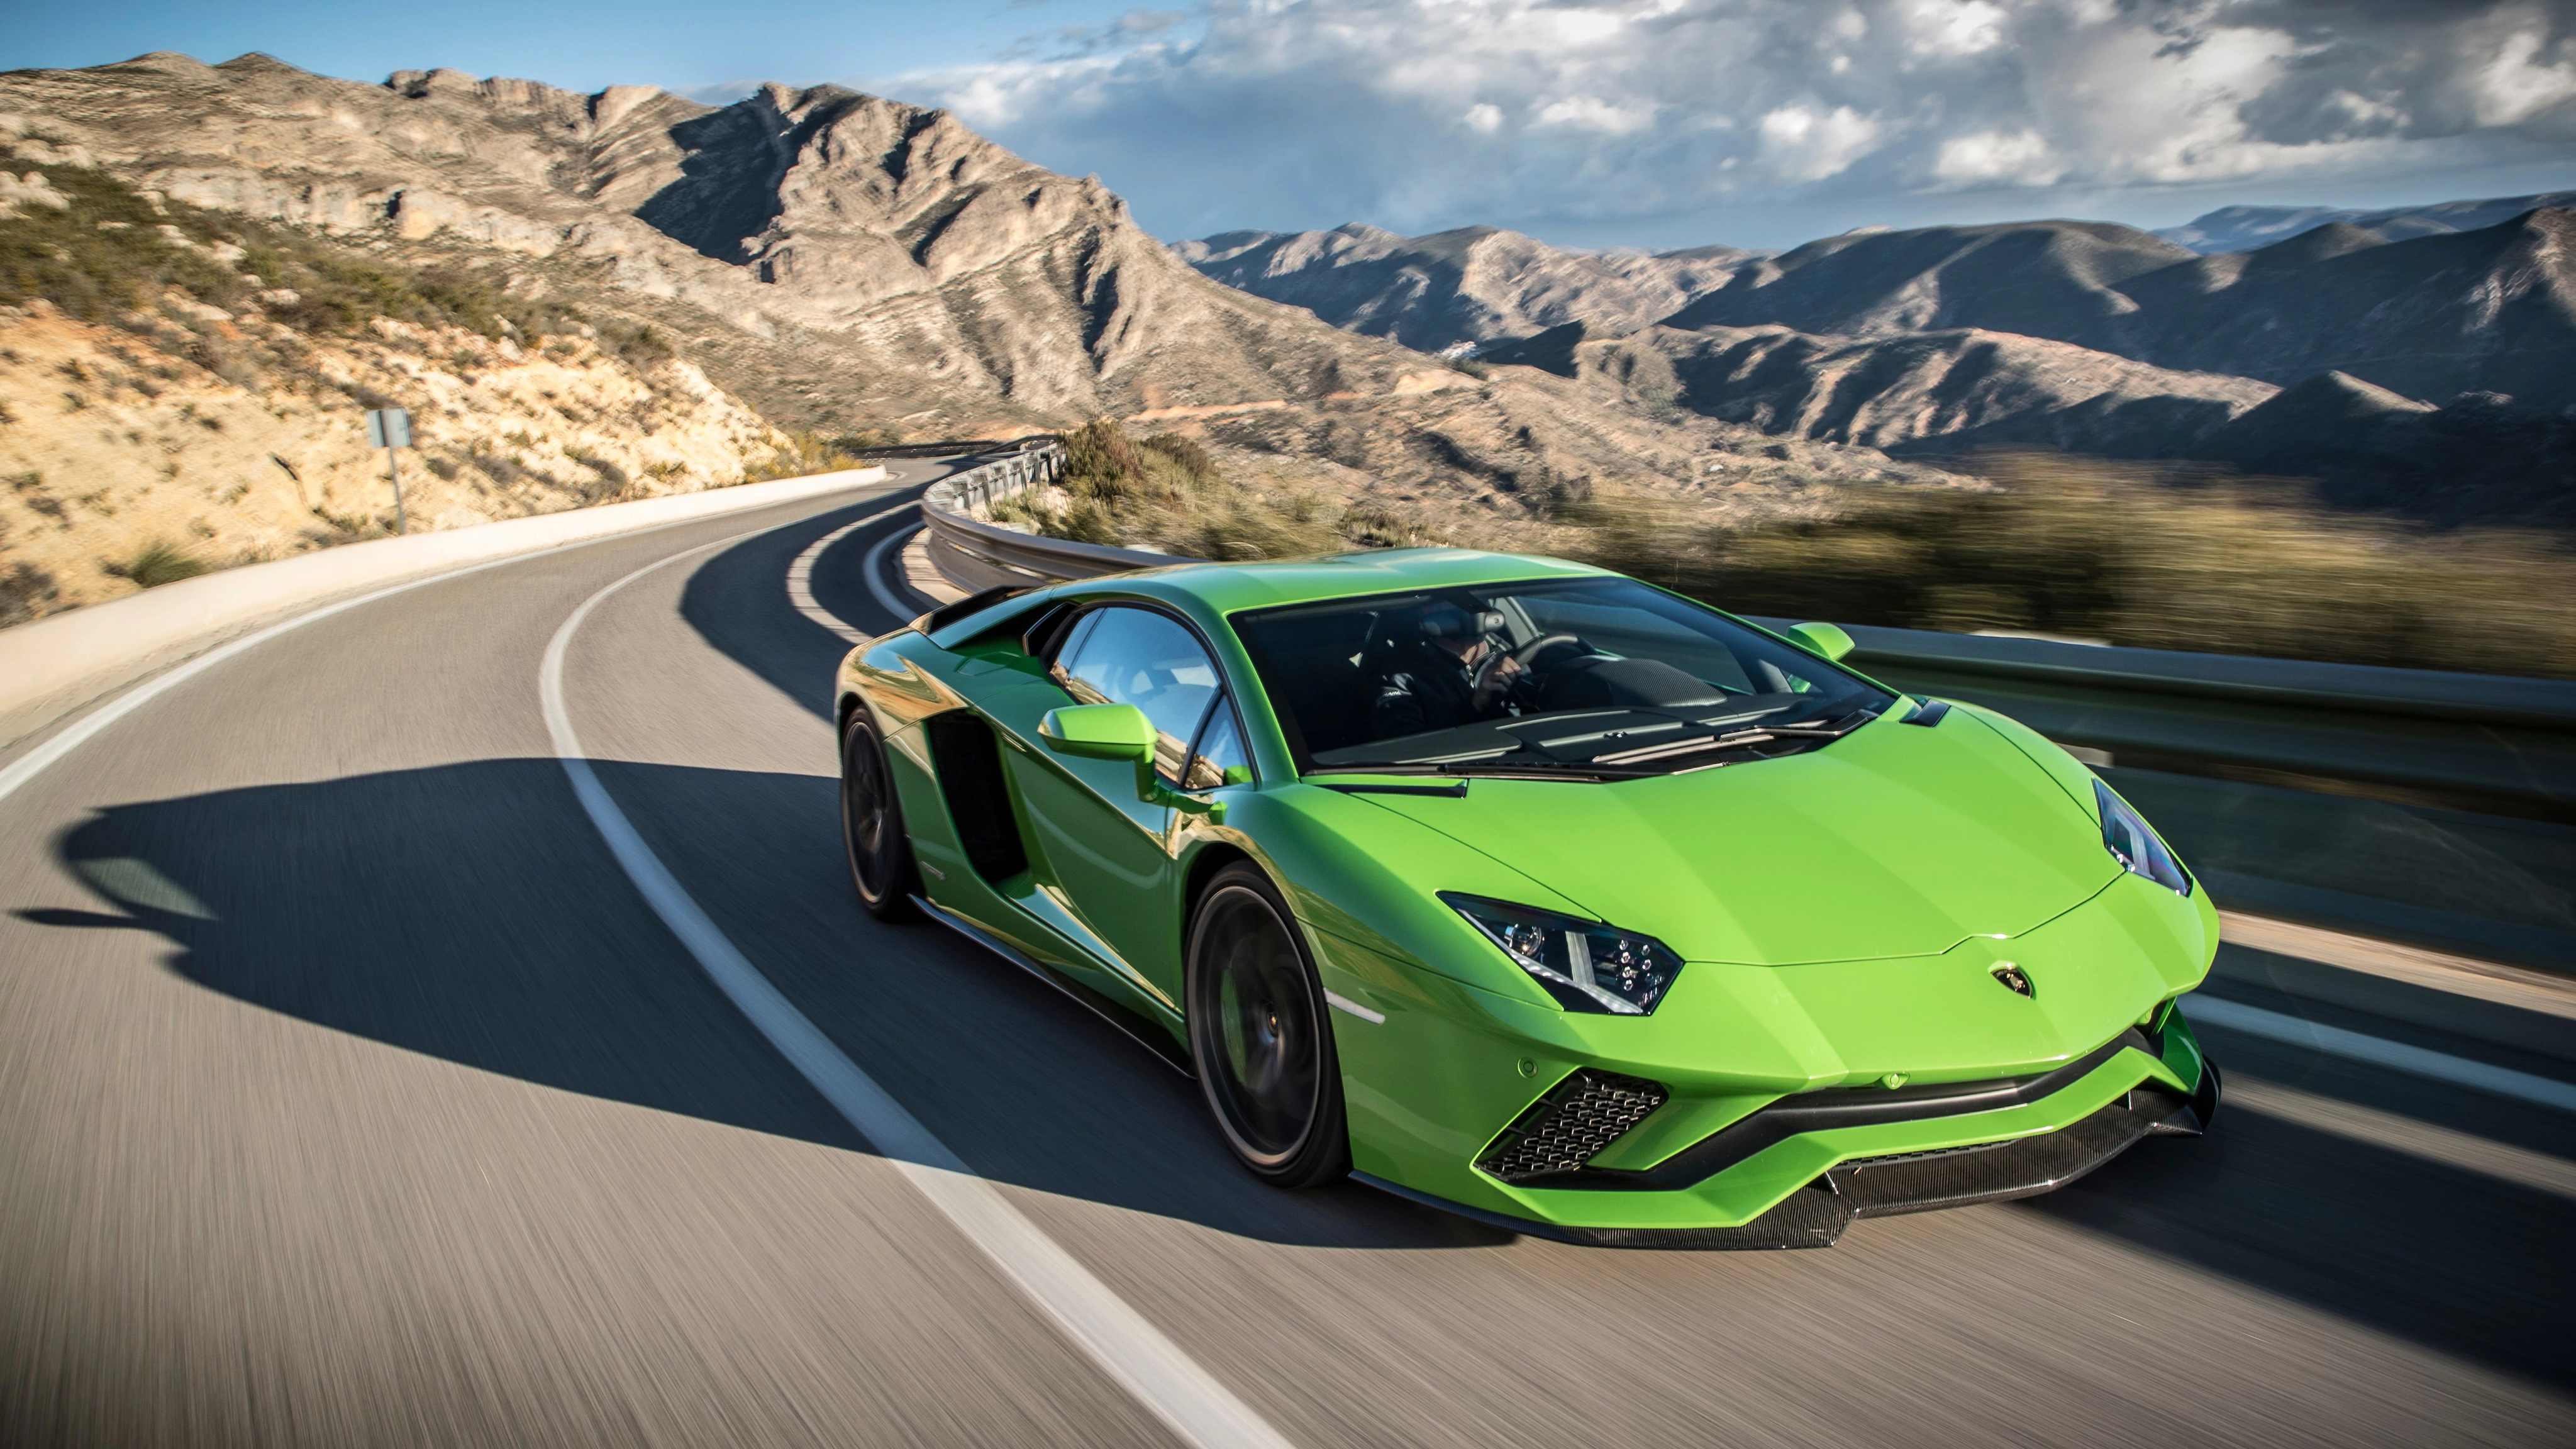 Lamborghini Aventador Sv Roadster Wallpaper Posted By Michelle